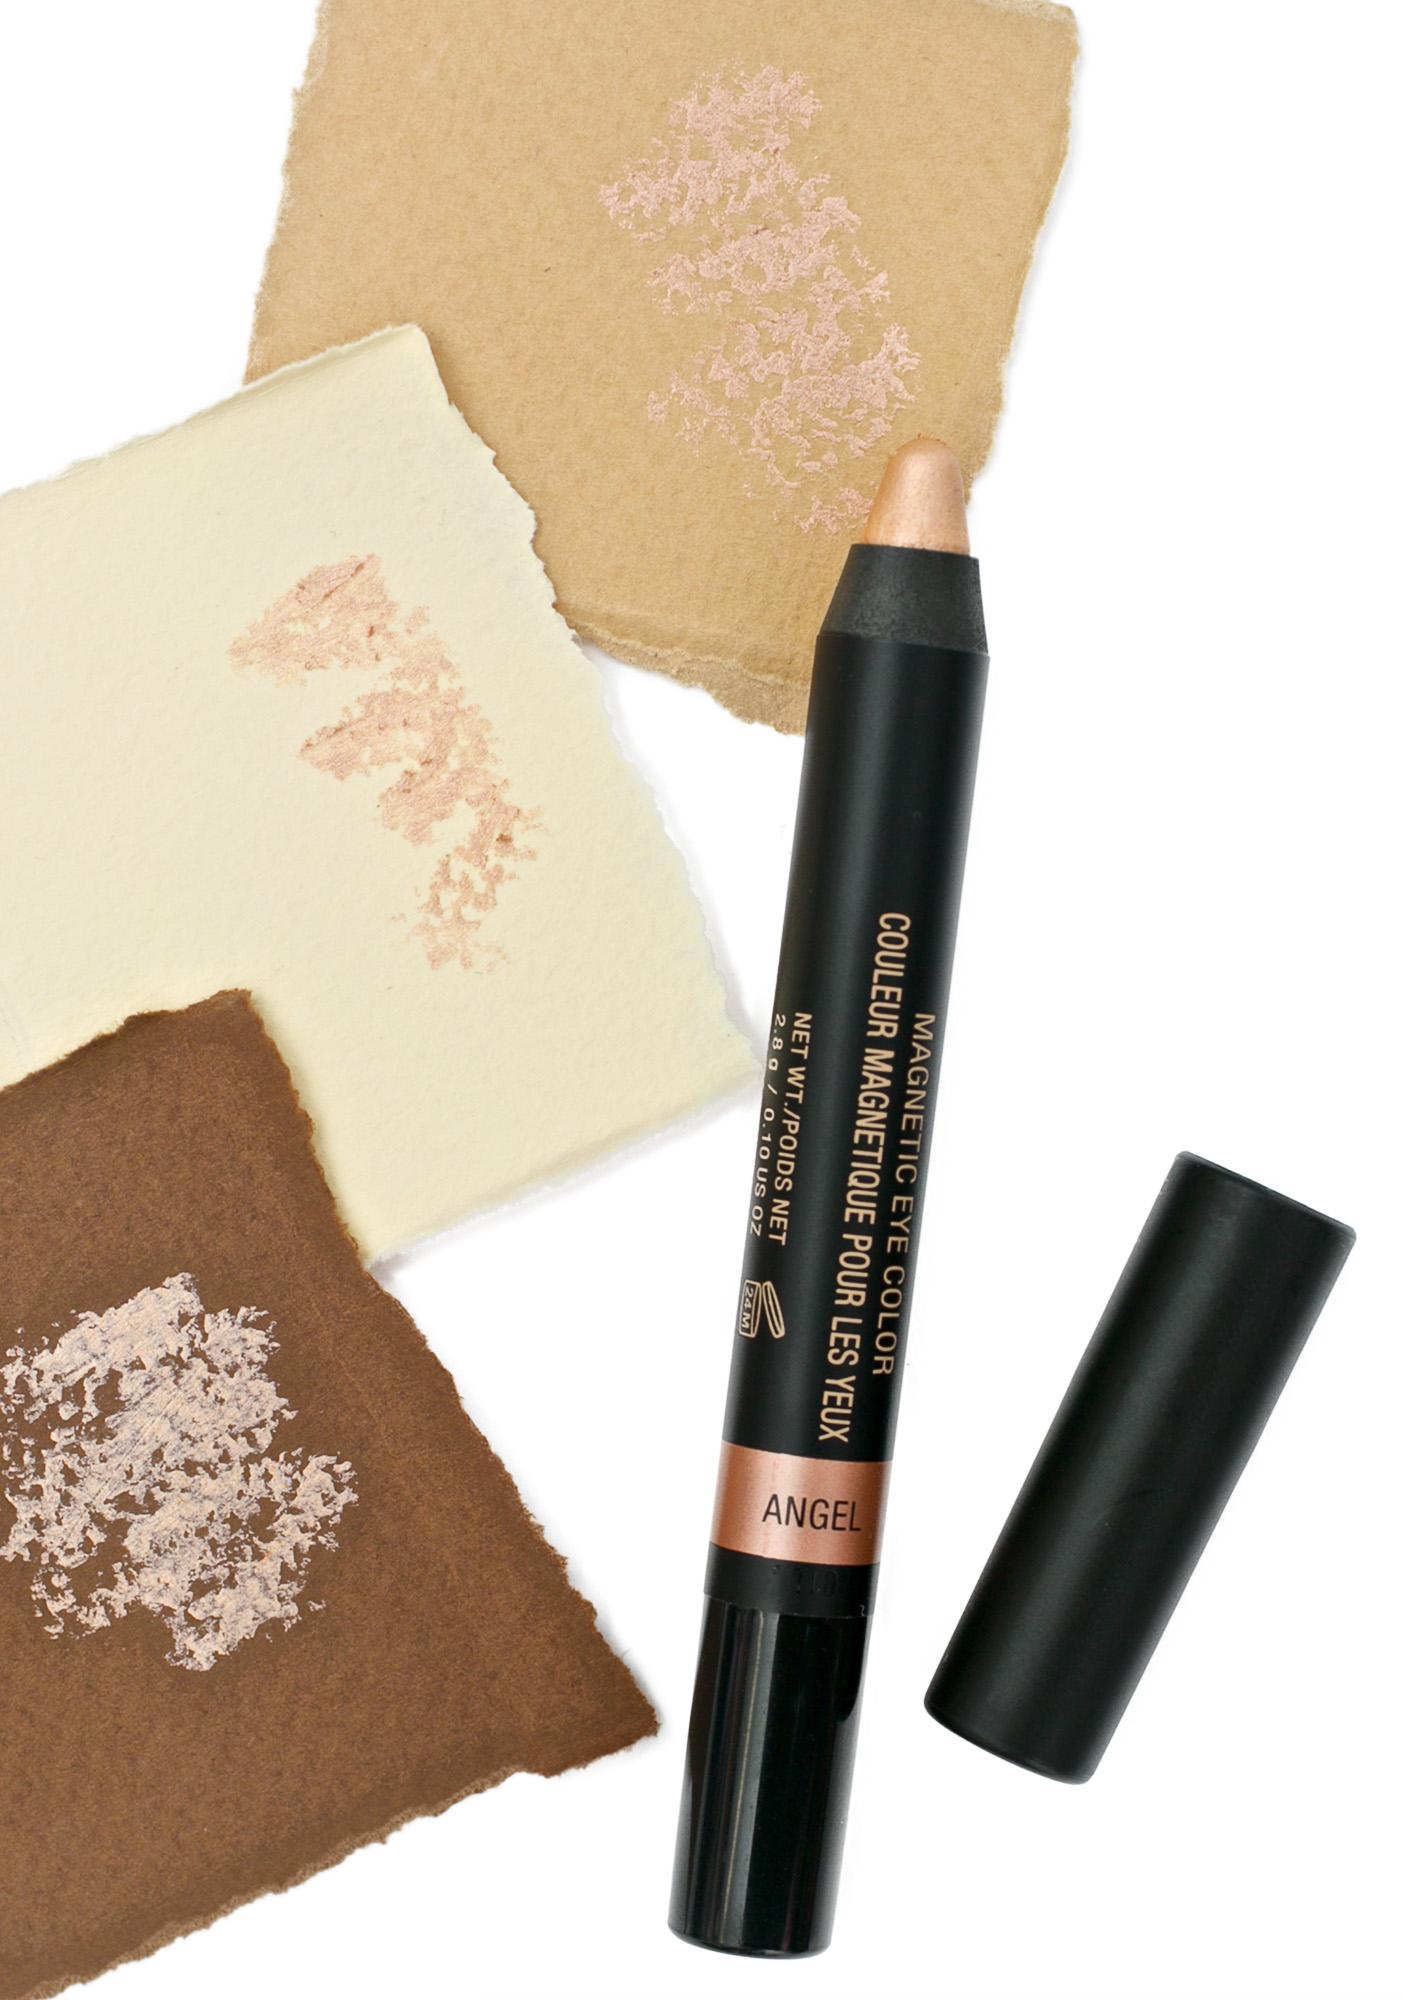 Nudestix Angel Magnetic Eye Pencil